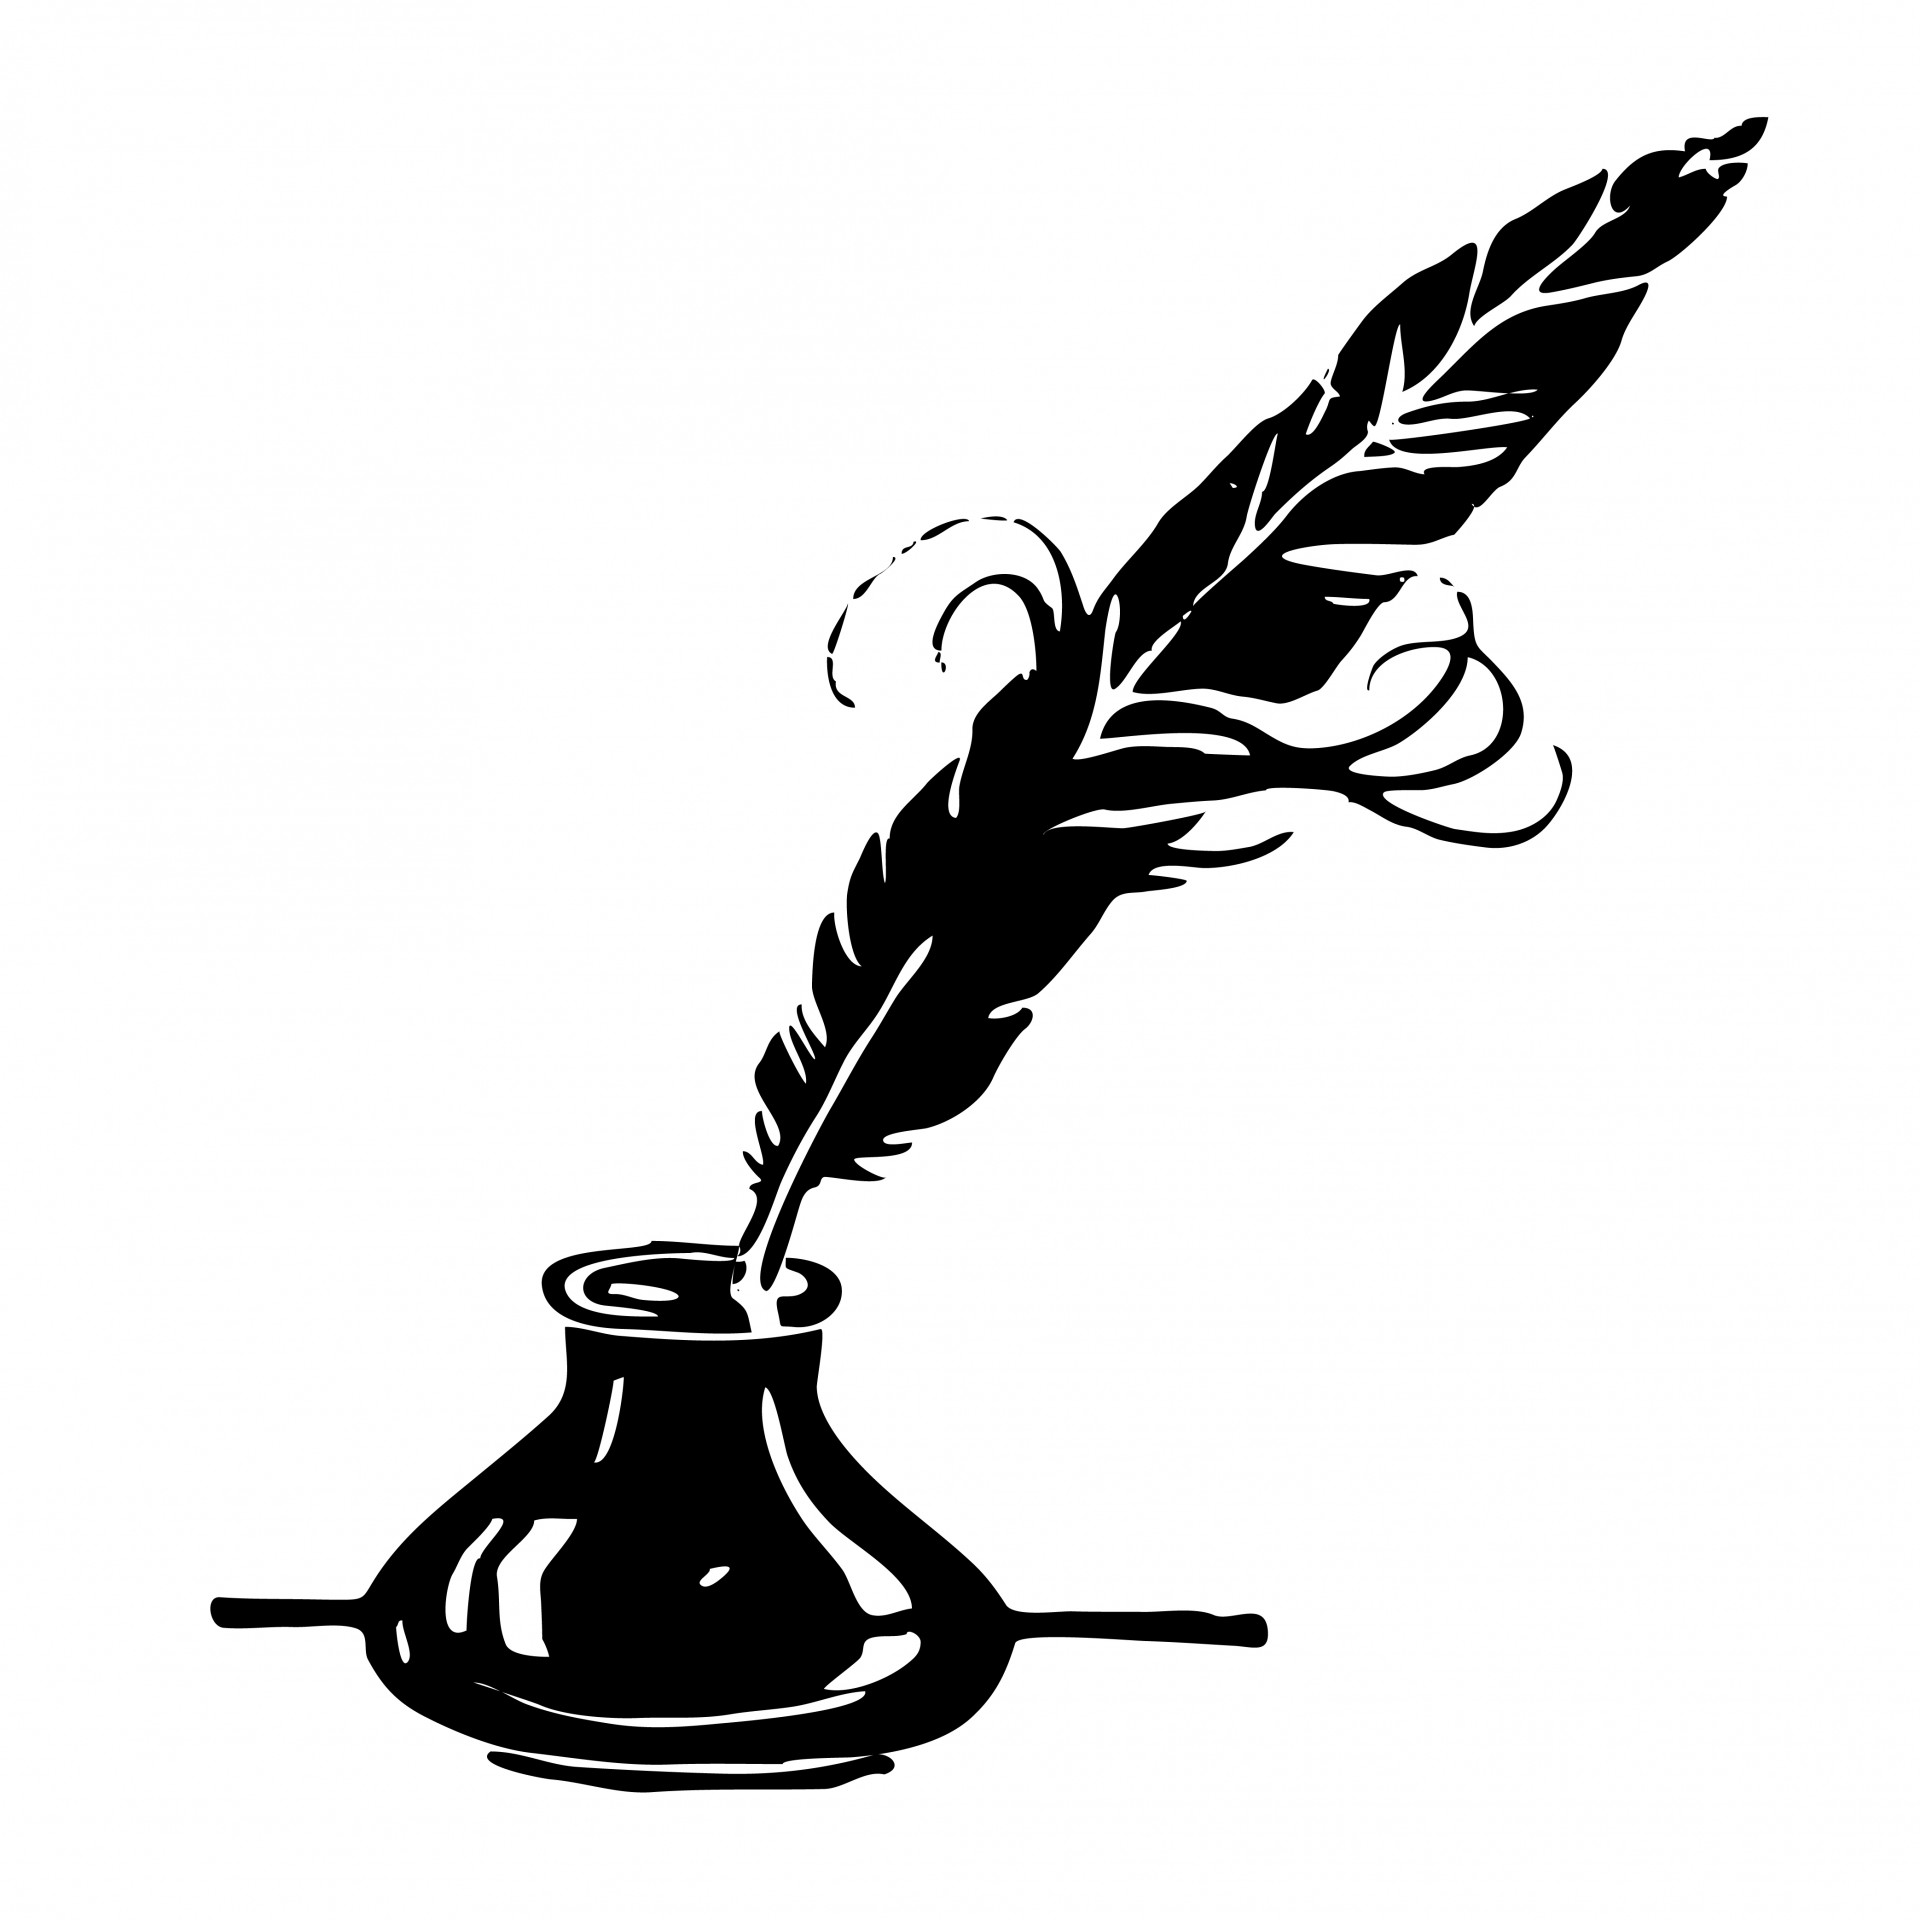 Ink u0026amp; Feather Quill Clipart-Ink u0026amp; Feather Quill Clipart-17